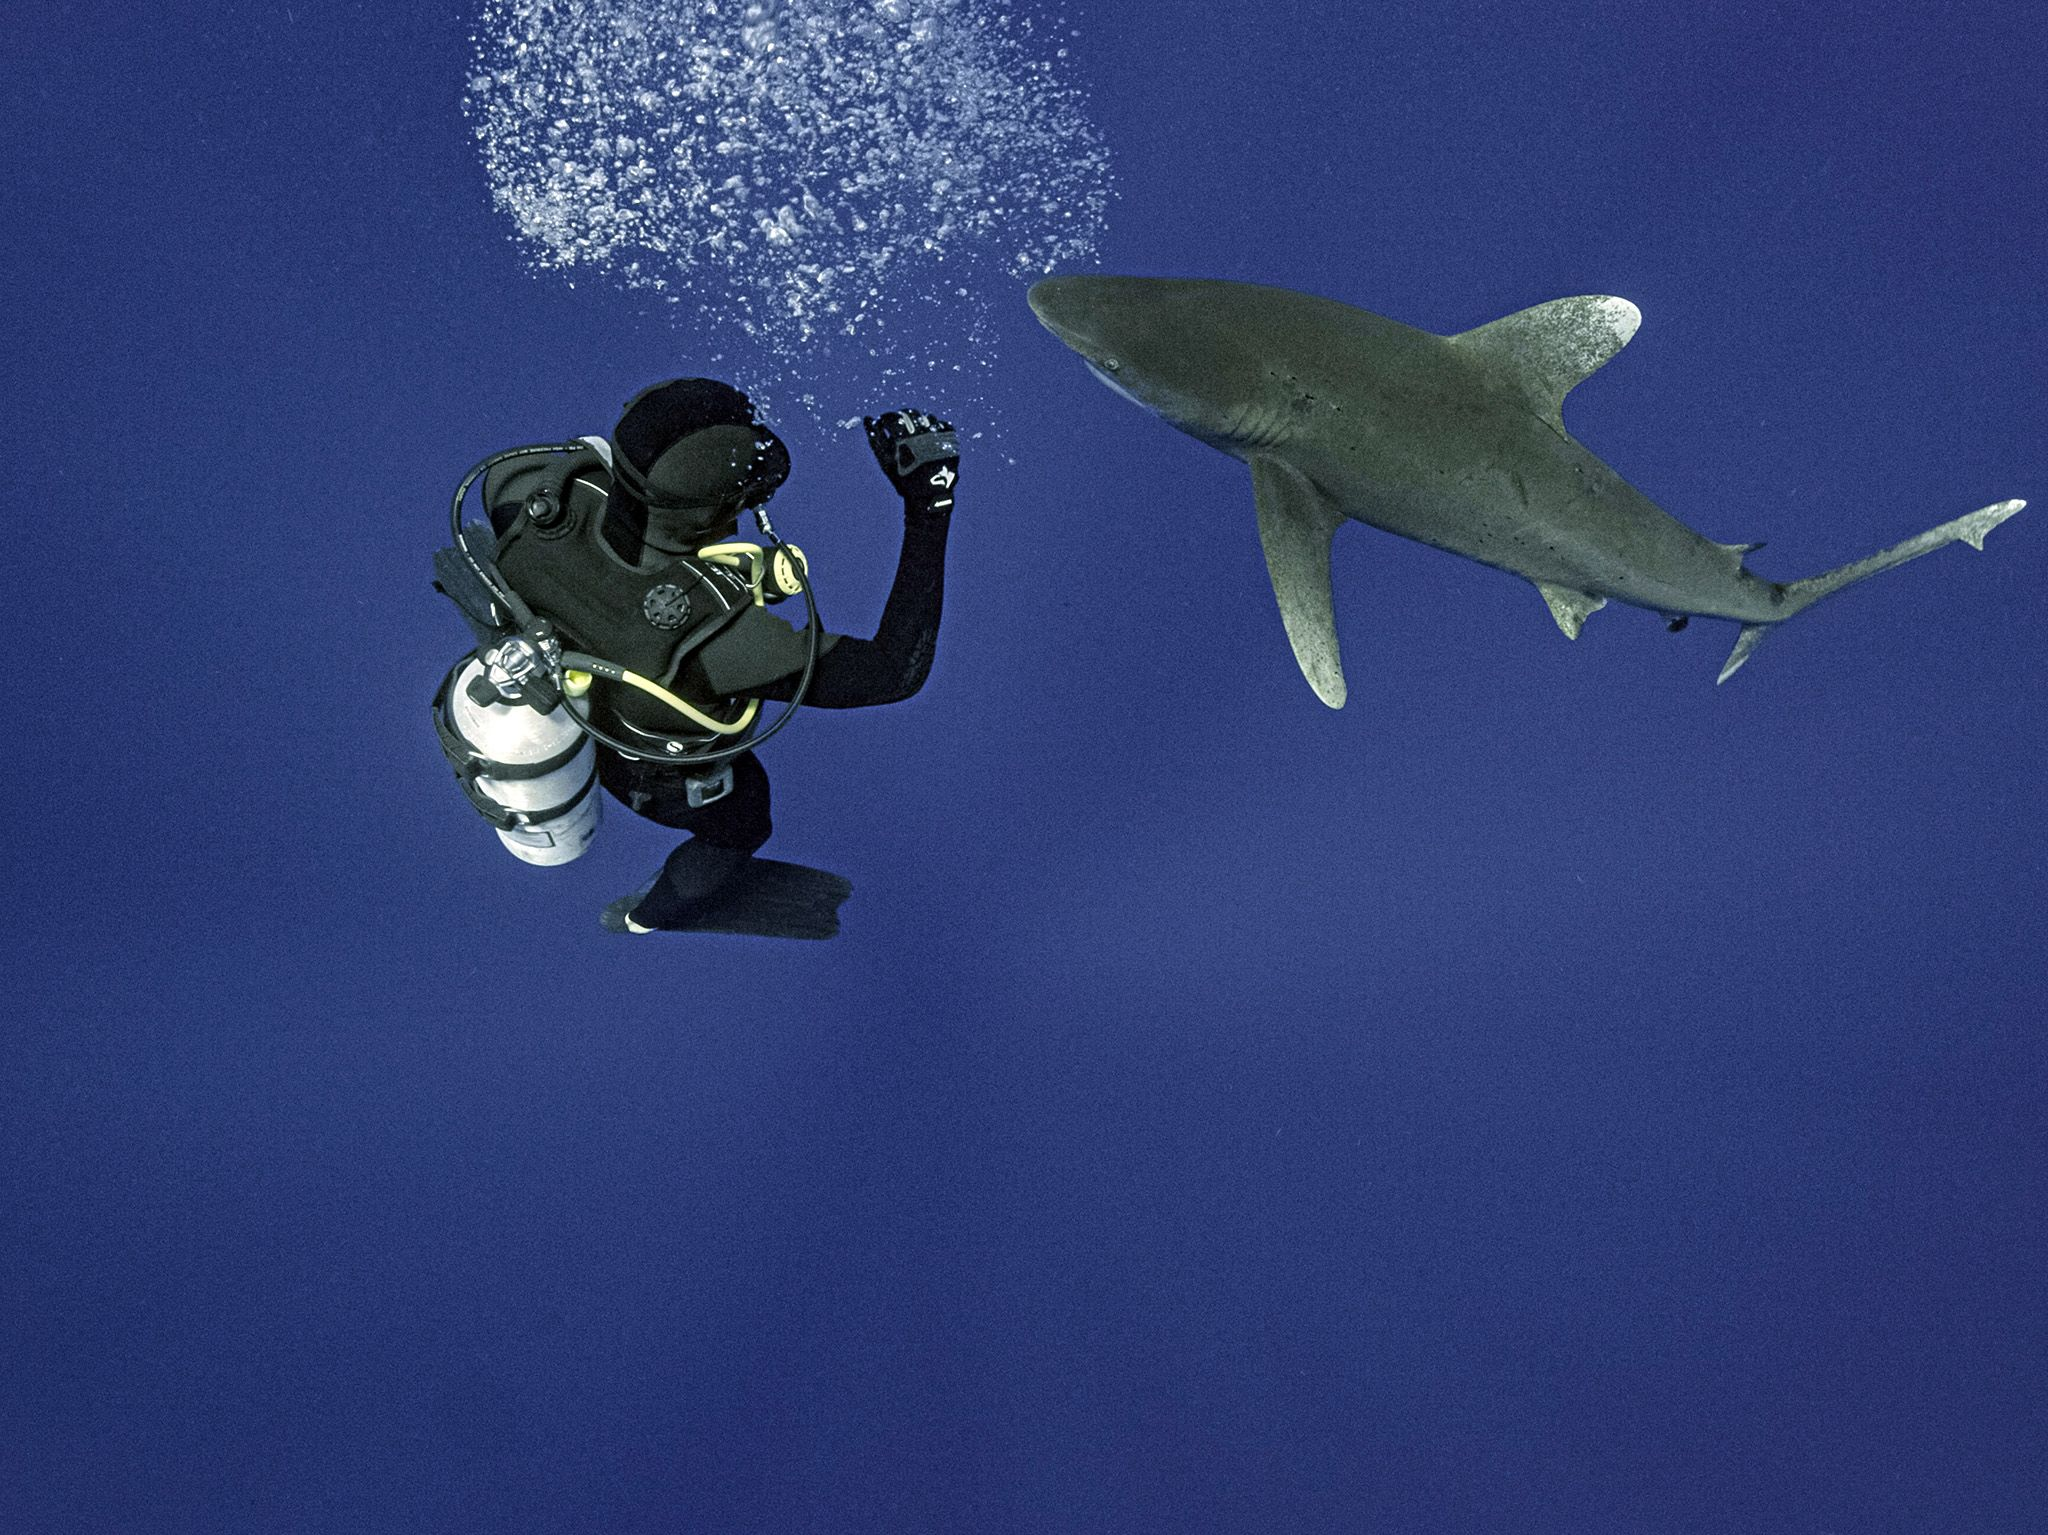 Marine researcher Eric Schneider dives with an oceanic whitetip shark.  This is part of World's... [Photo of the day - July 2021]